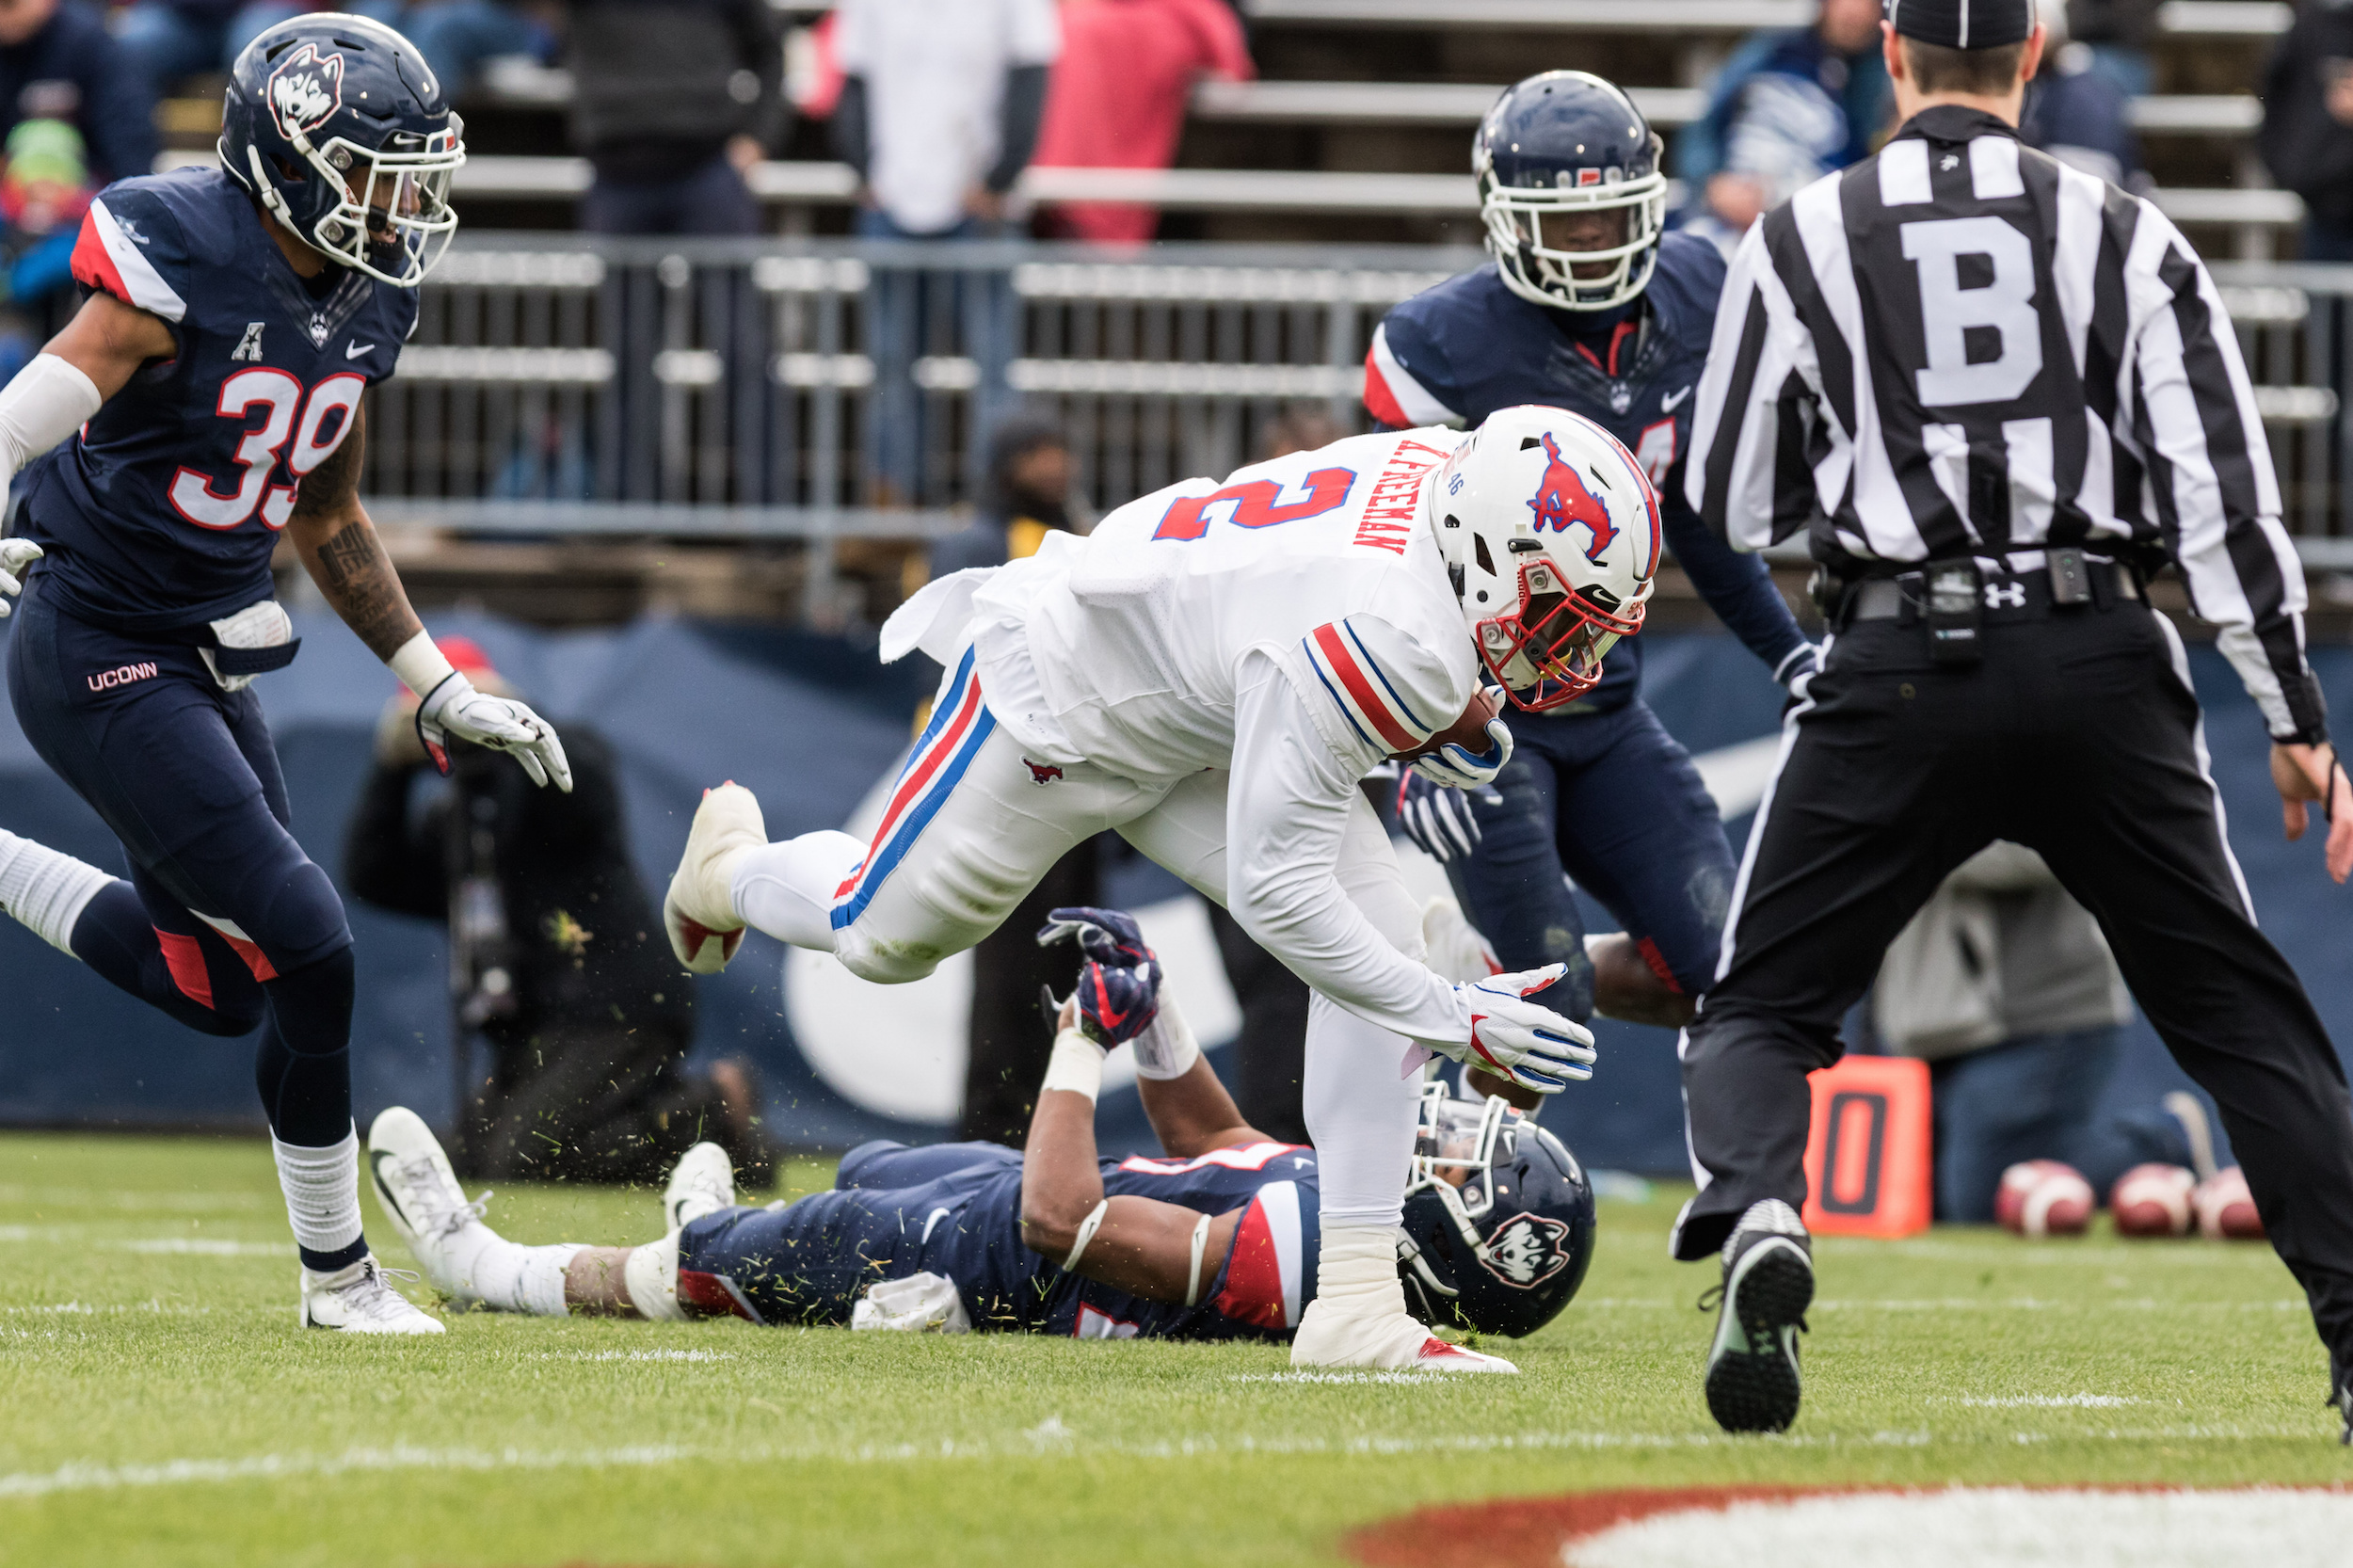 COLLEGE FOOTBALL: NOV 10 SMU at UConn